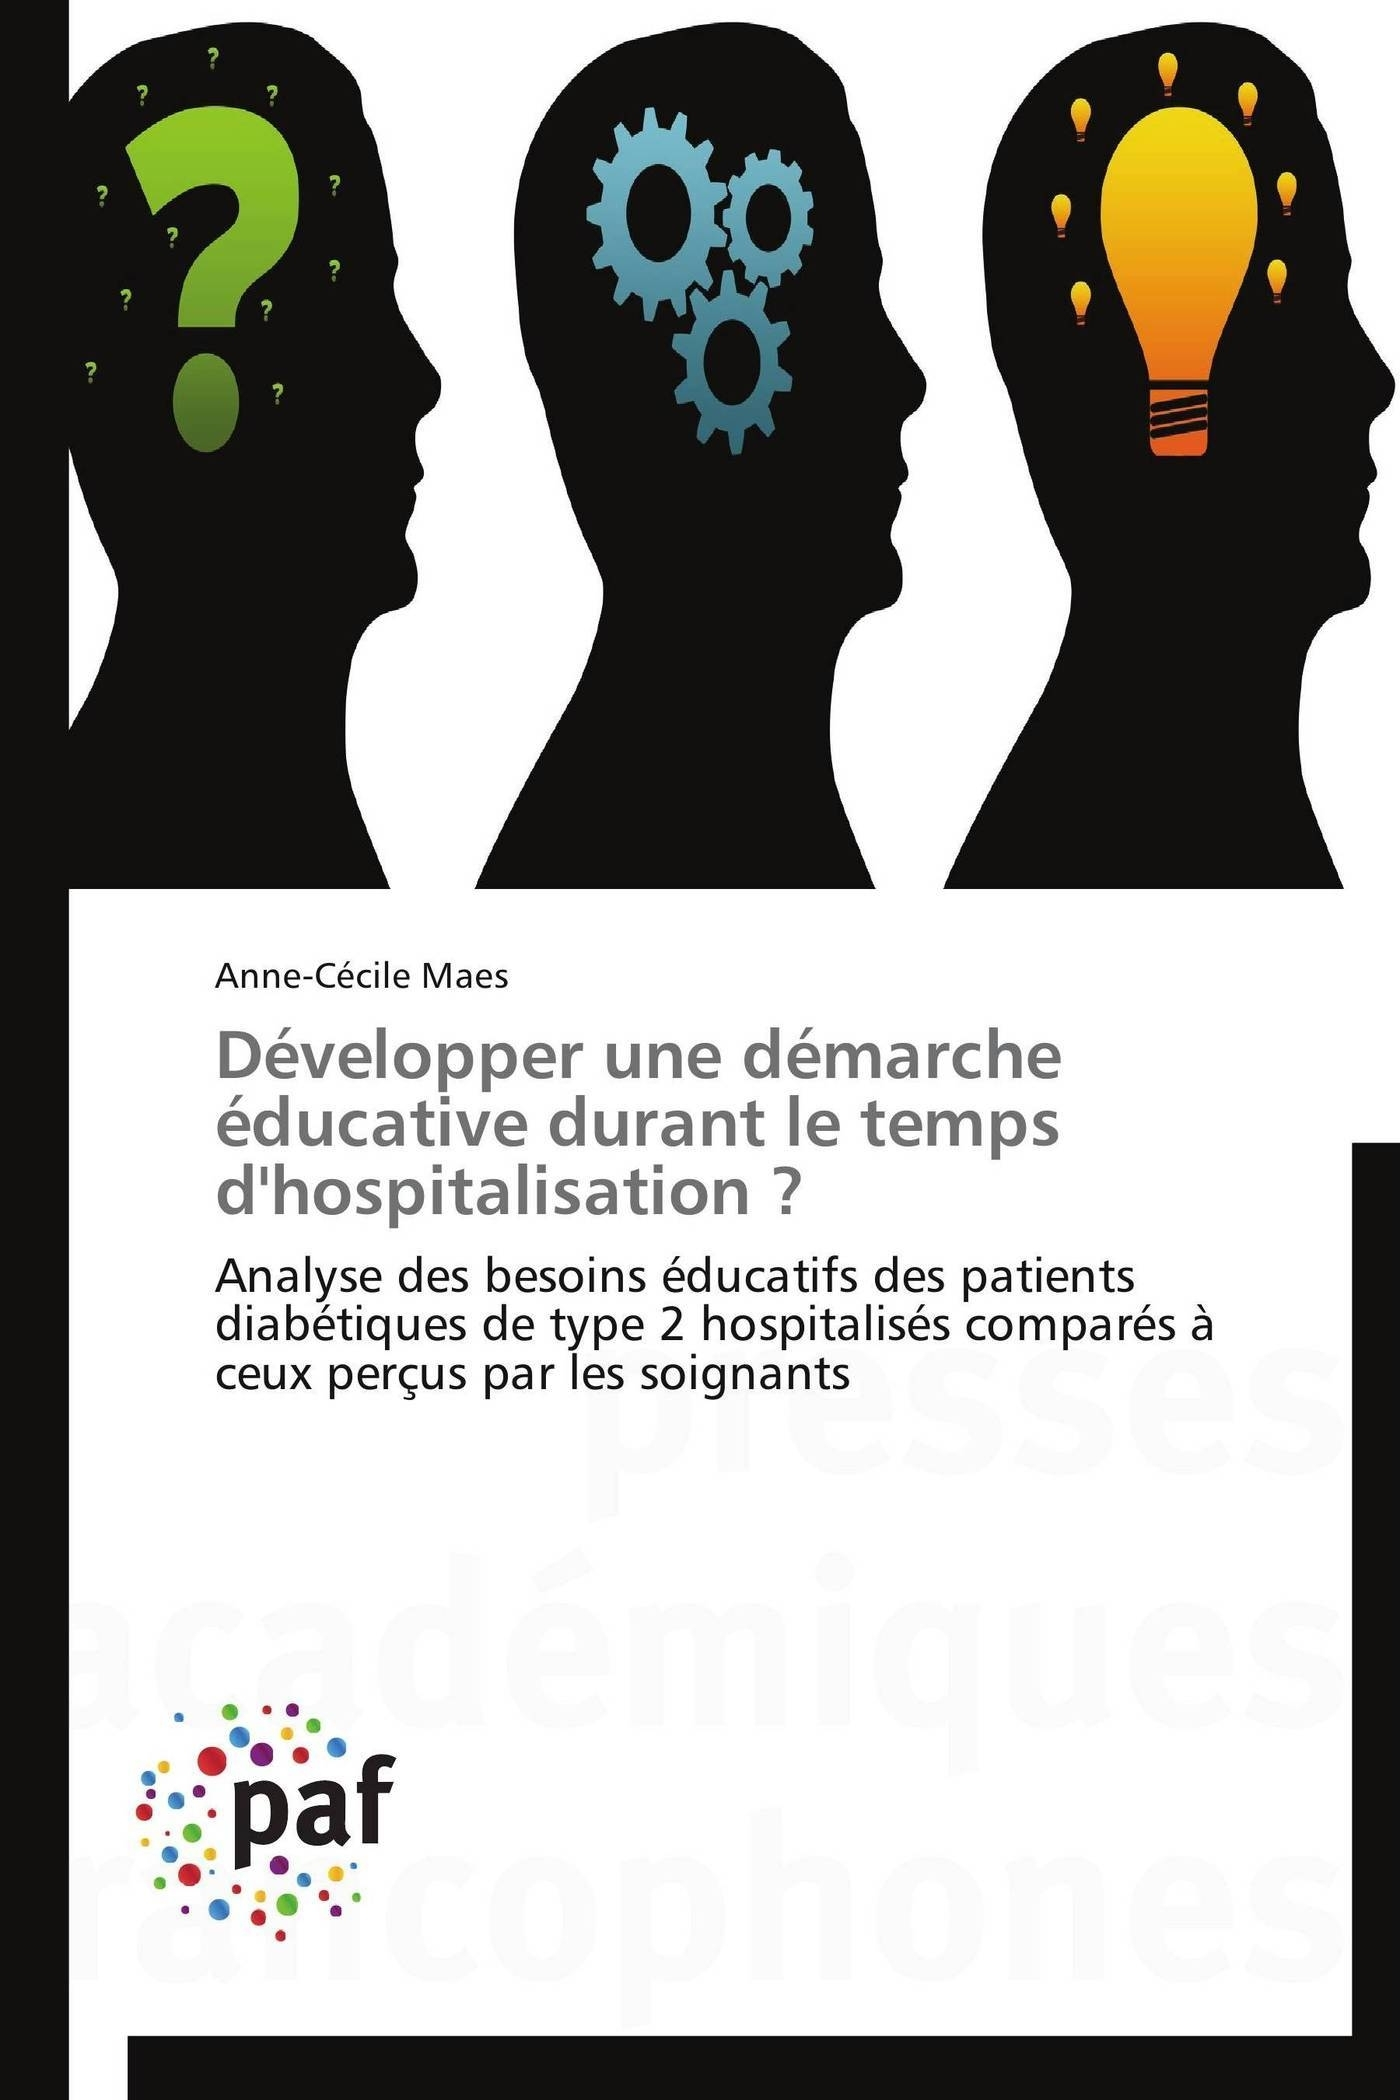 DEVELOPPER UNE DEMARCHE EDUCATIVE DURANT LE TEMPS D'HOSPITALISATION ?